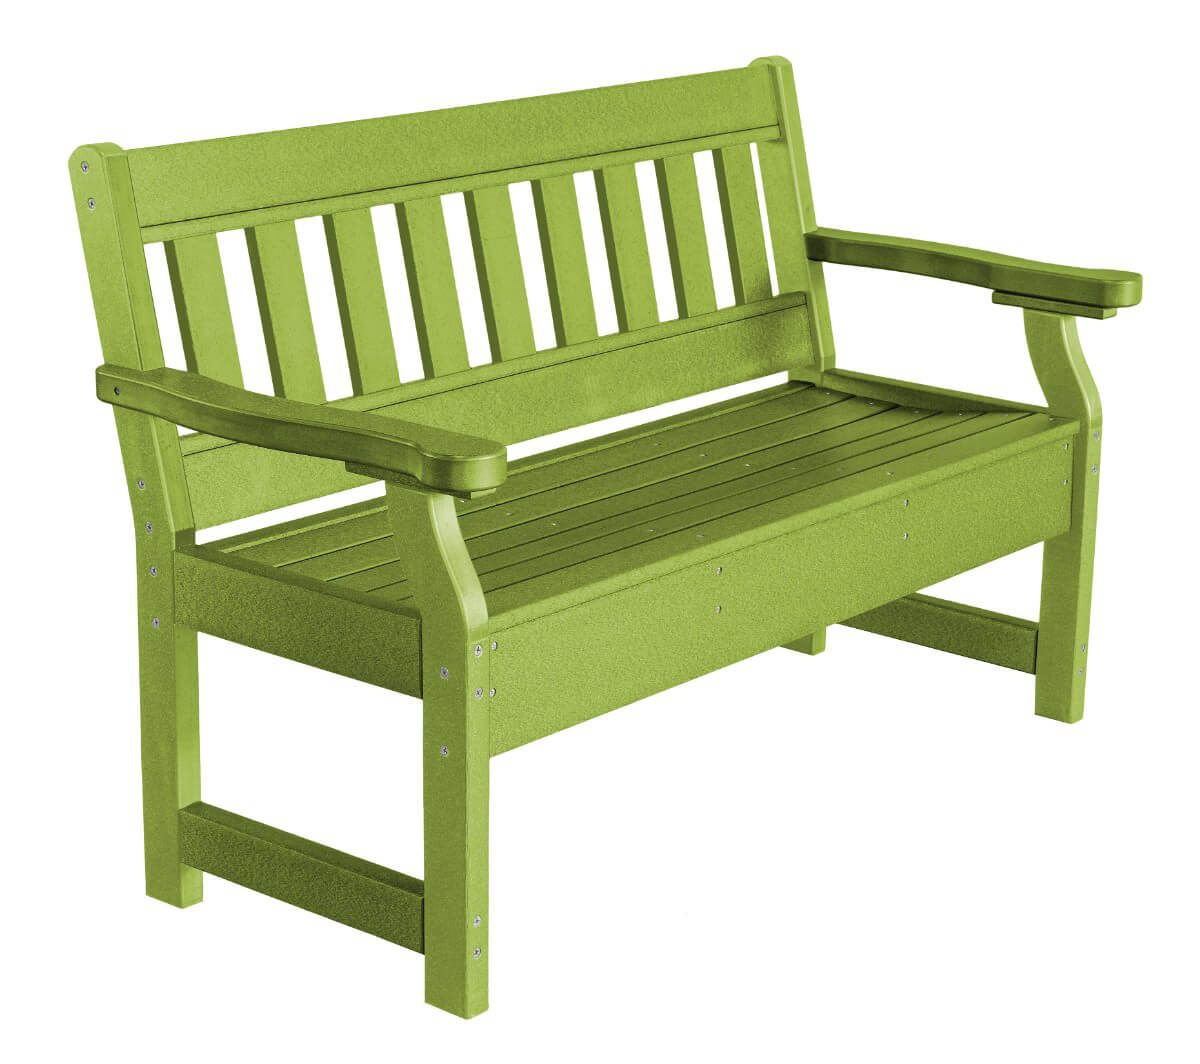 Lime Washed Farmhouse Tables And Benches Bespoke Sizes: Countryside Amish Furniture